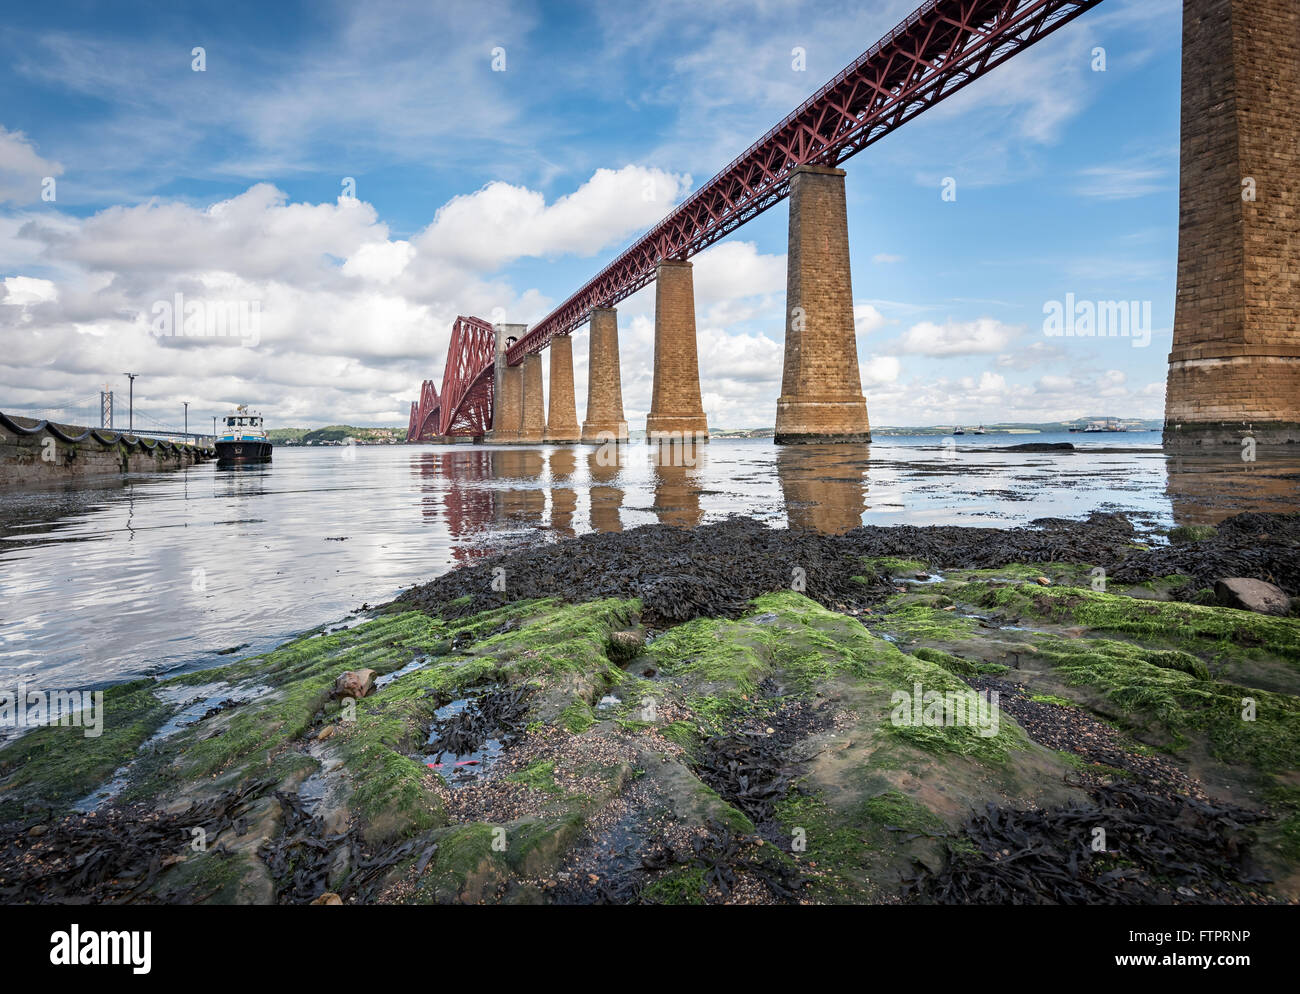 The Firth of Forth is the estuary or firth of Scotland's River Forth, where it flows into the North Sea. - Stock Image